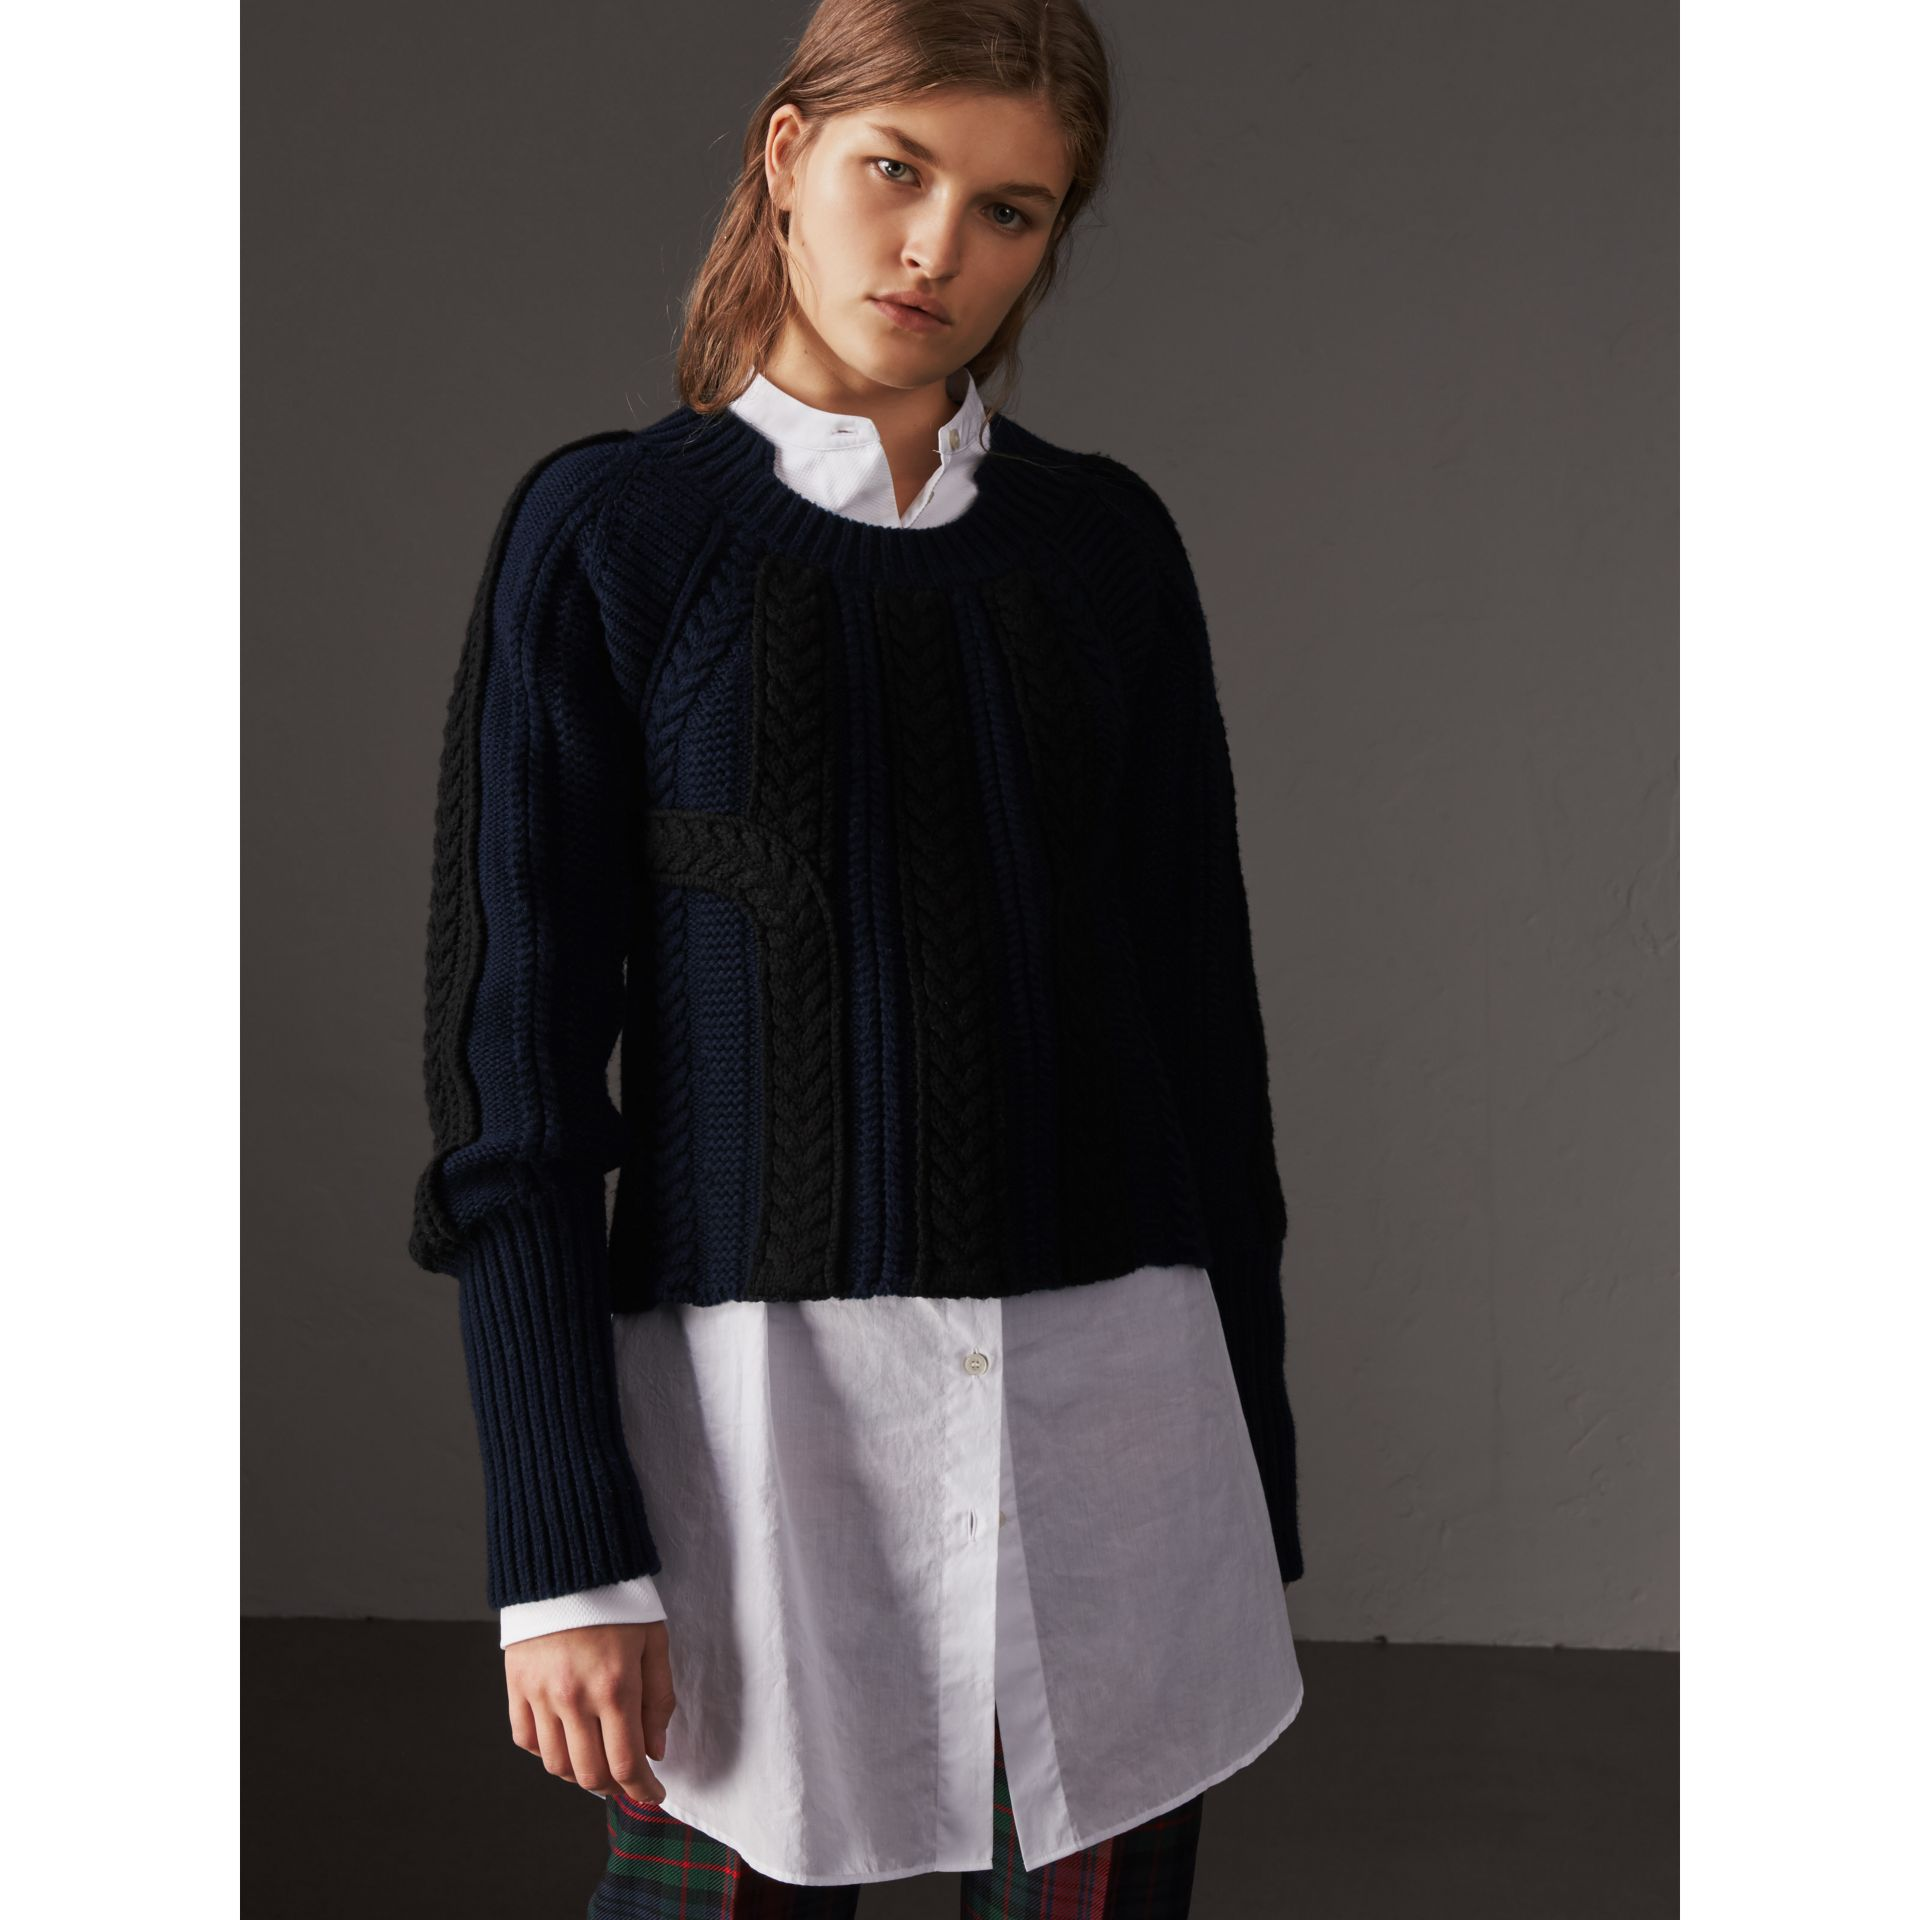 Two-tone Cable Knit Wool Cashmere Sweater in Navy - Women | Burberry United States - gallery image 5